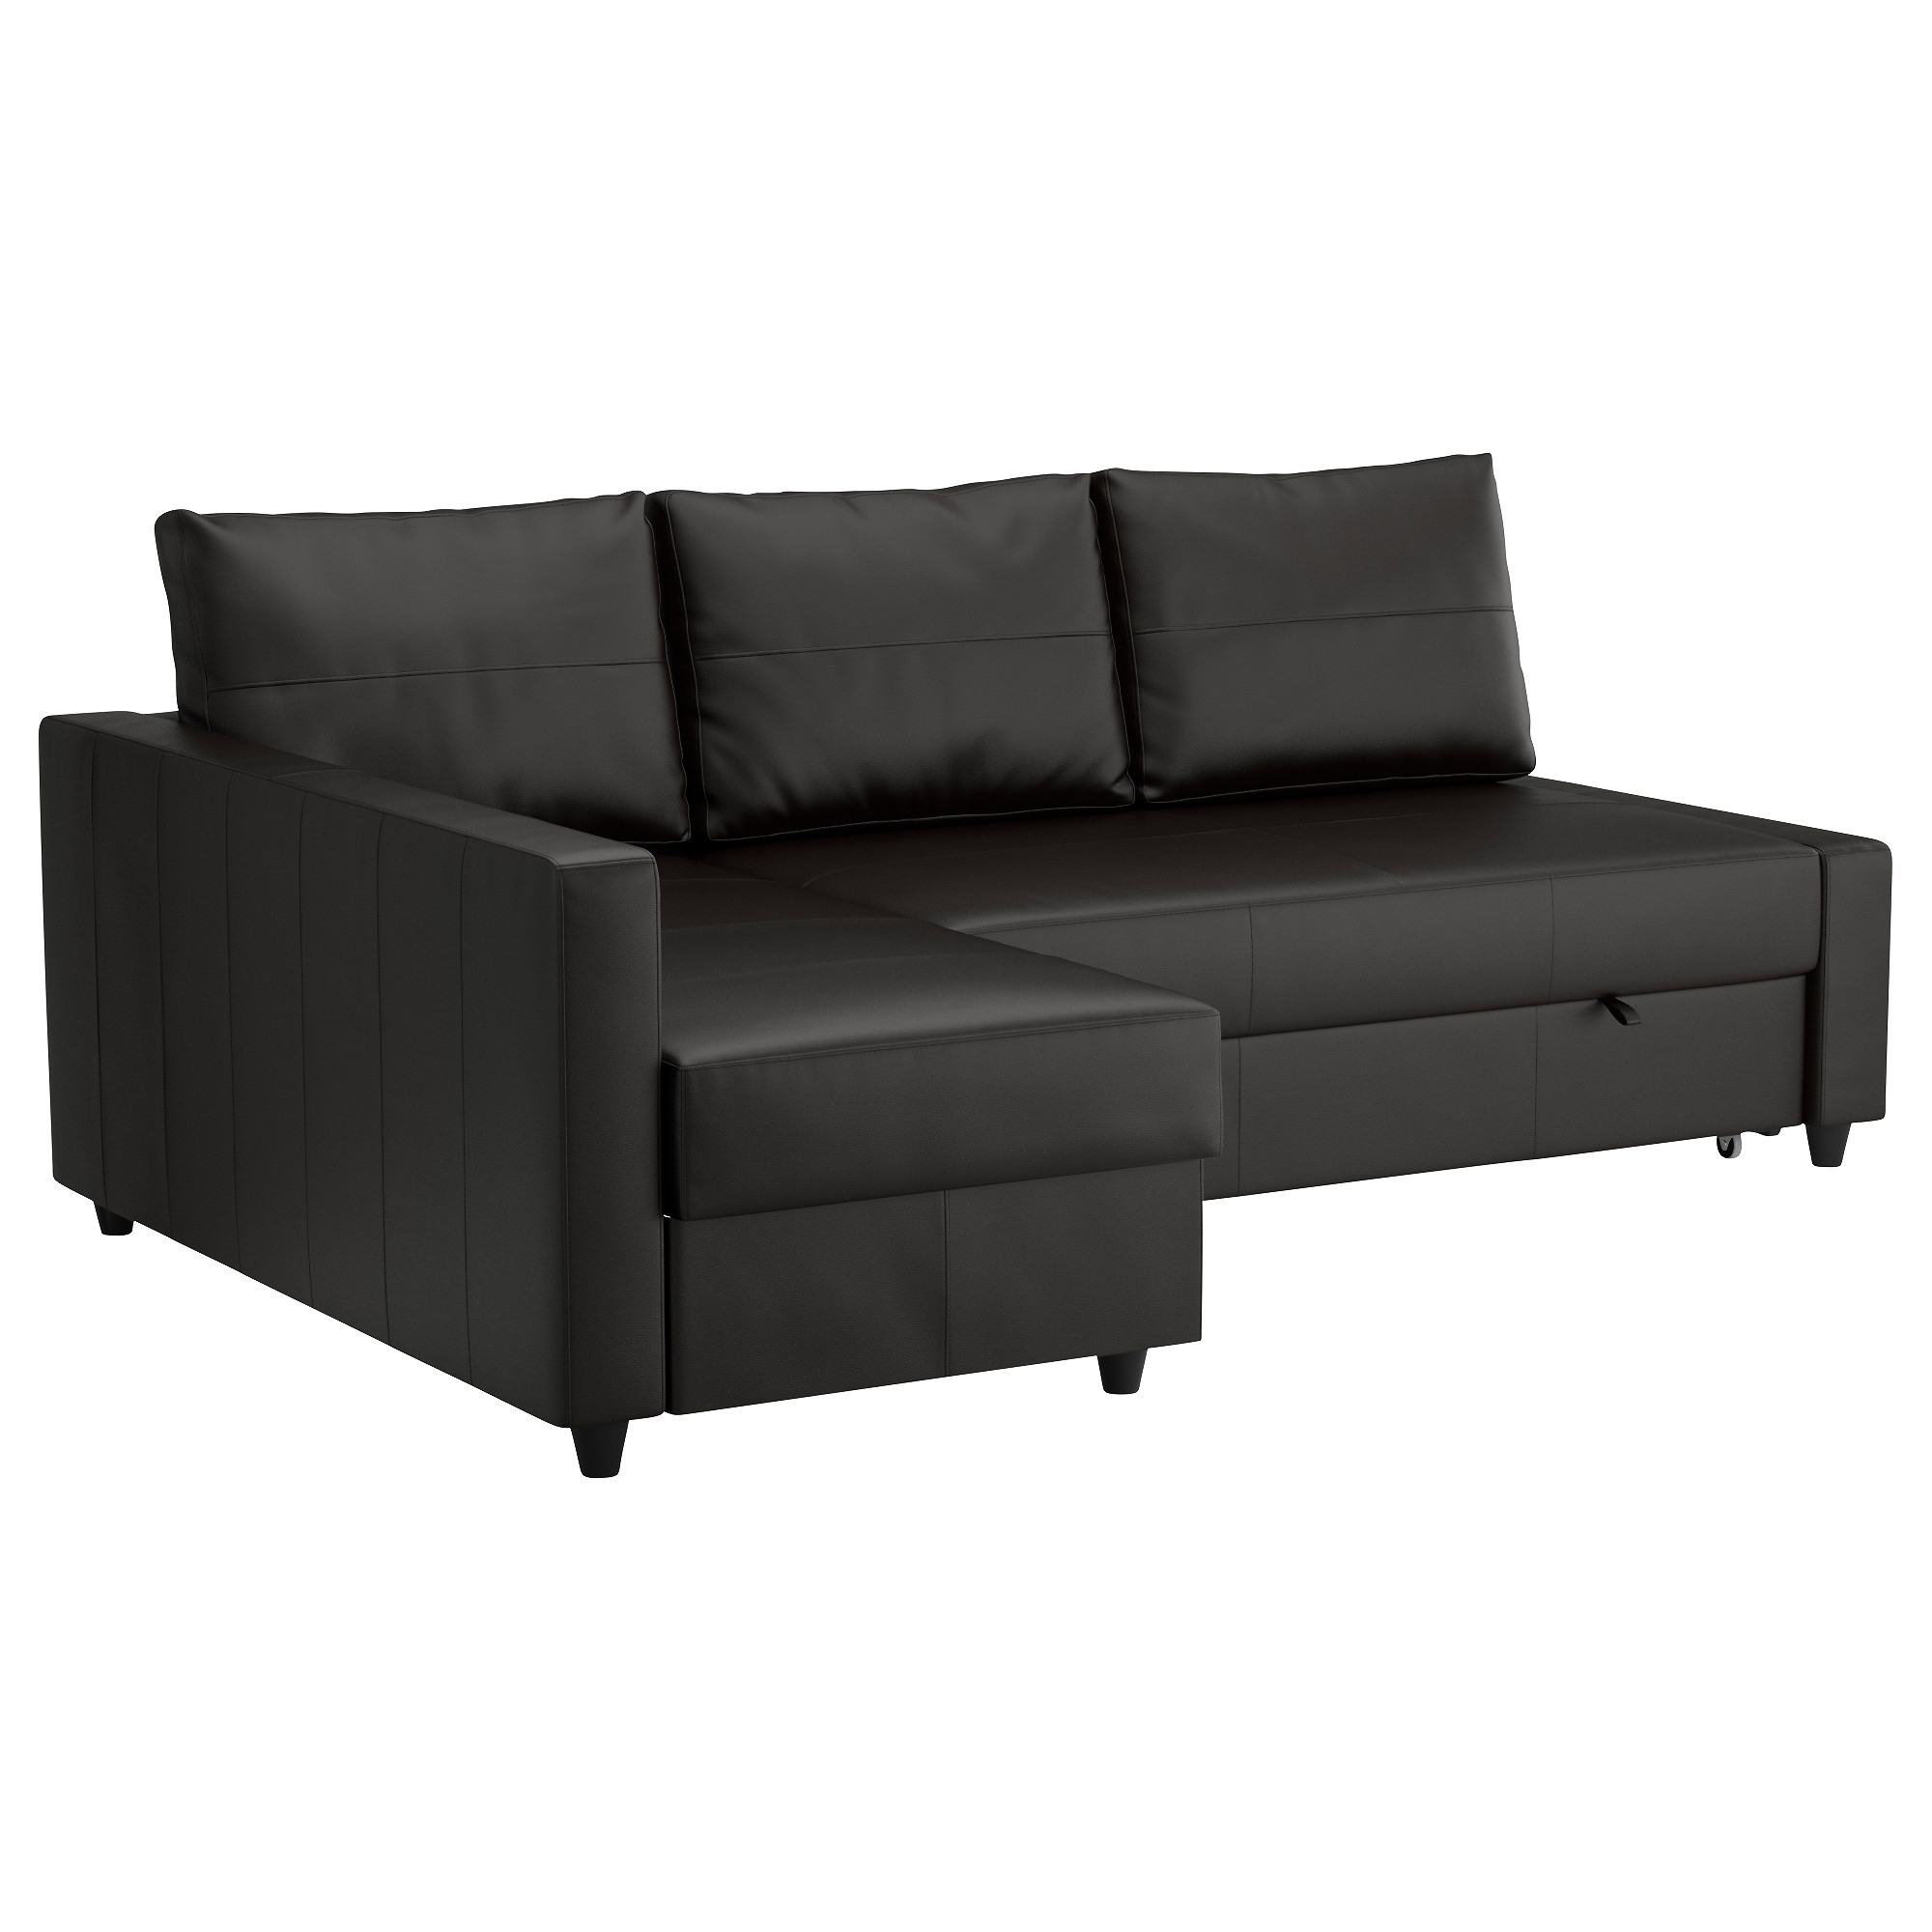 Sleeper Chaise Sofas With Regard To Most Up To Date Friheten Sleeper Sectional,3 Seat W/storage – Skiftebo Dark Gray (View 10 of 15)